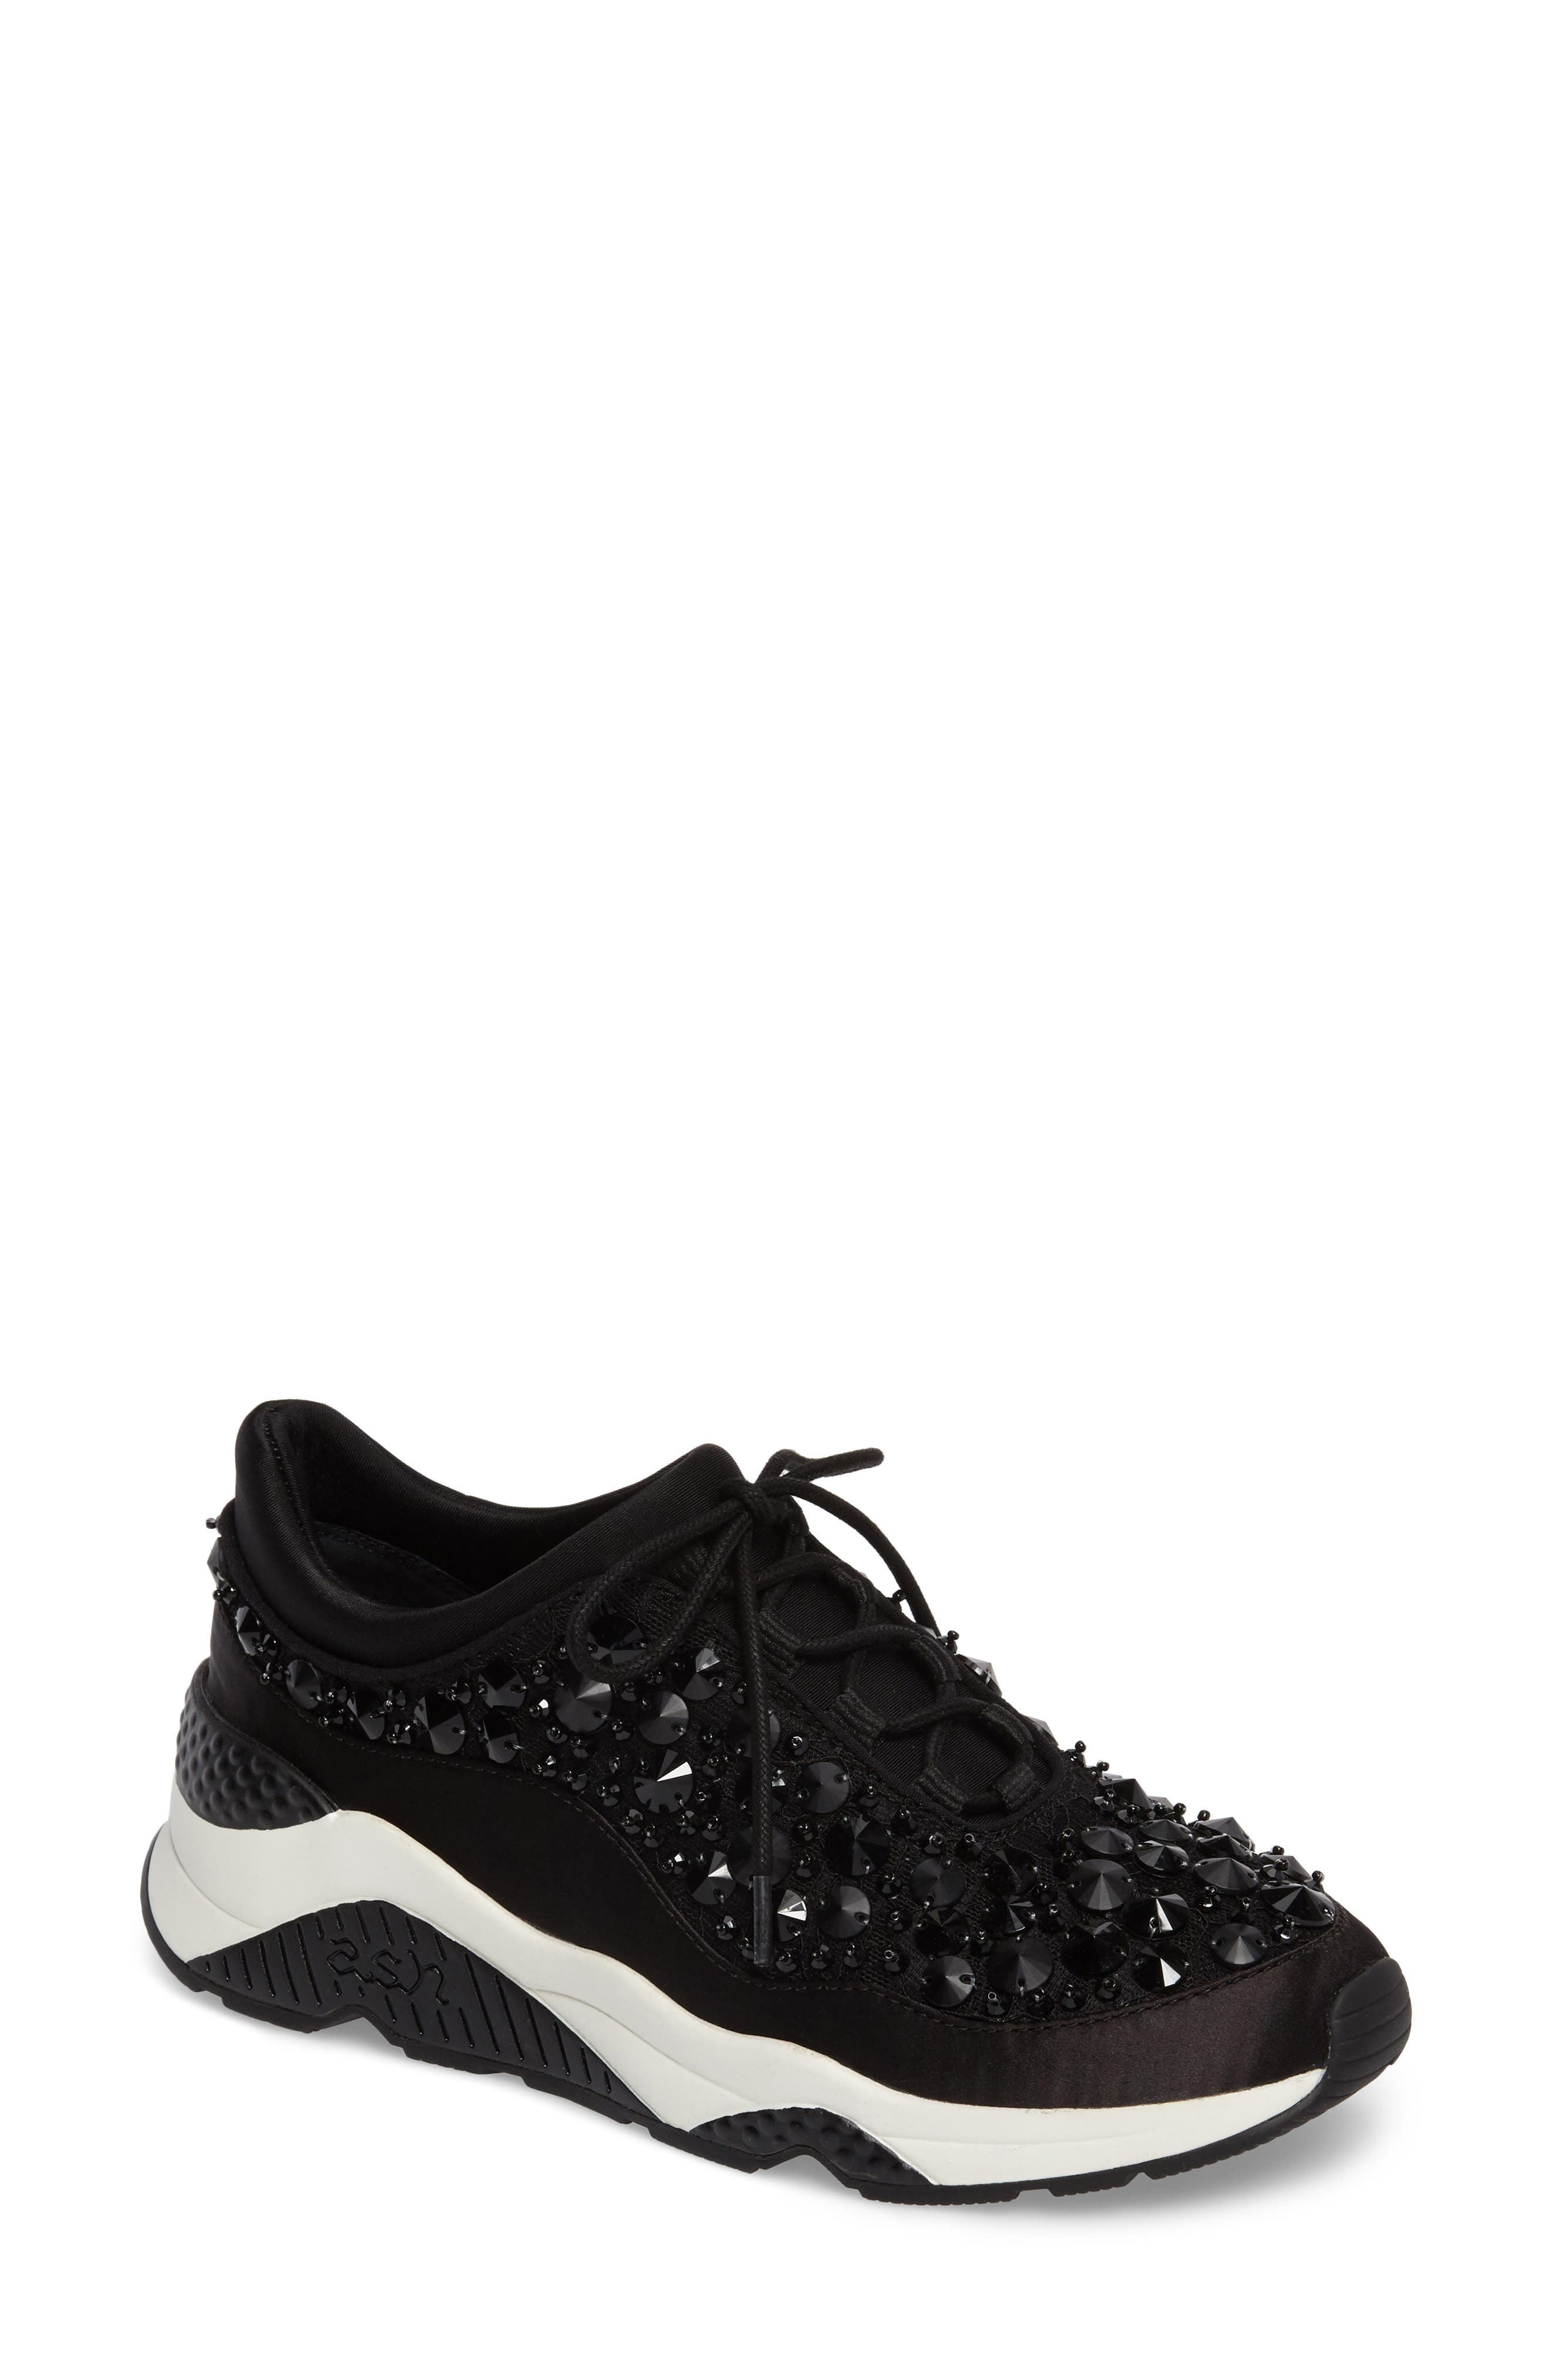 Muse Beads Sneaker,                             Main thumbnail 1, color,                             Black/ Black Fabric